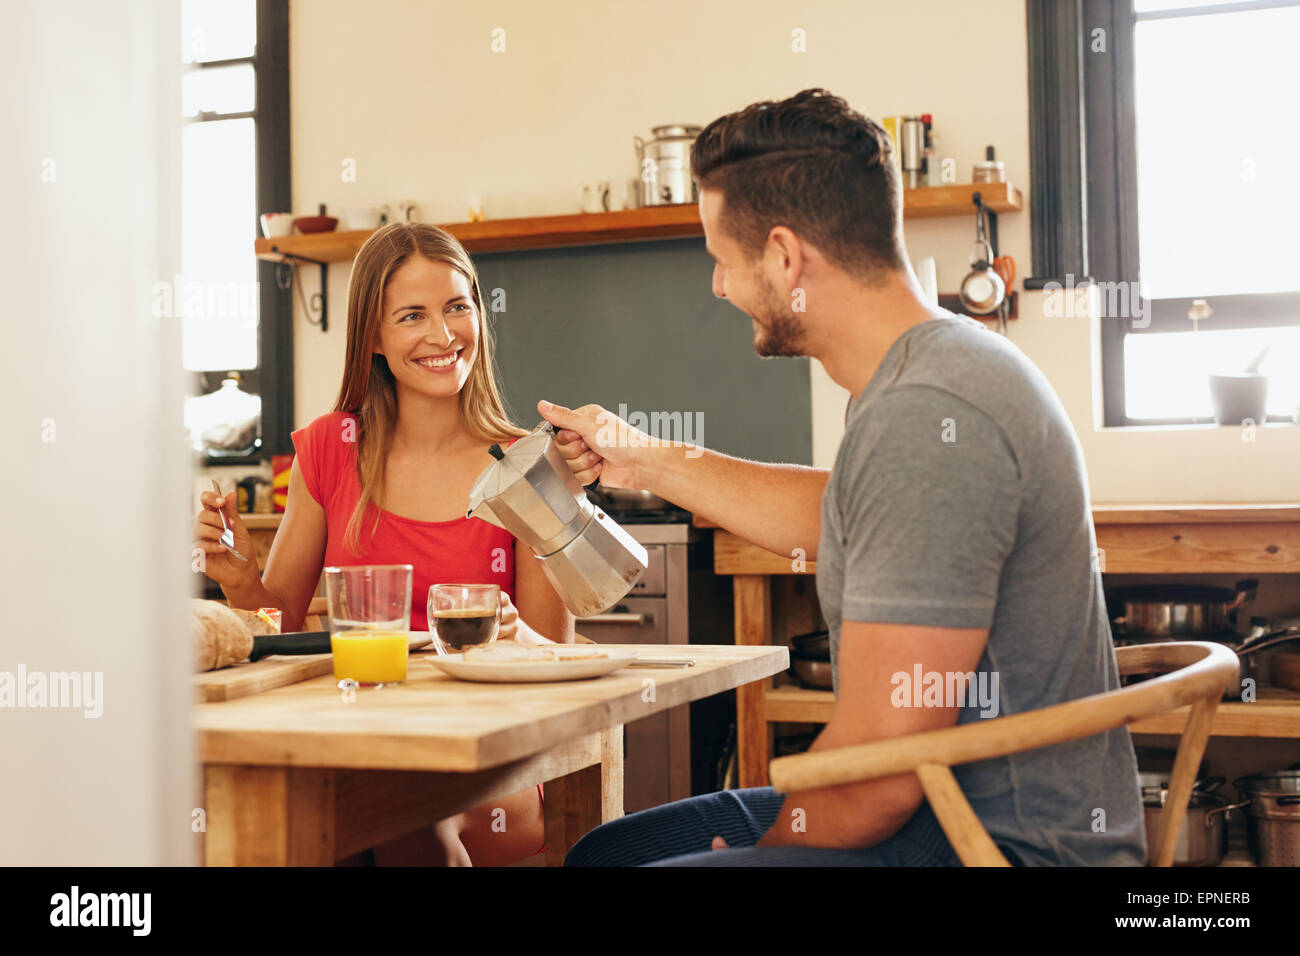 Indoor shot of young man serving coffee to his girlfriend having breakfast in kitchen at home. Smiling young couple - Stock Image